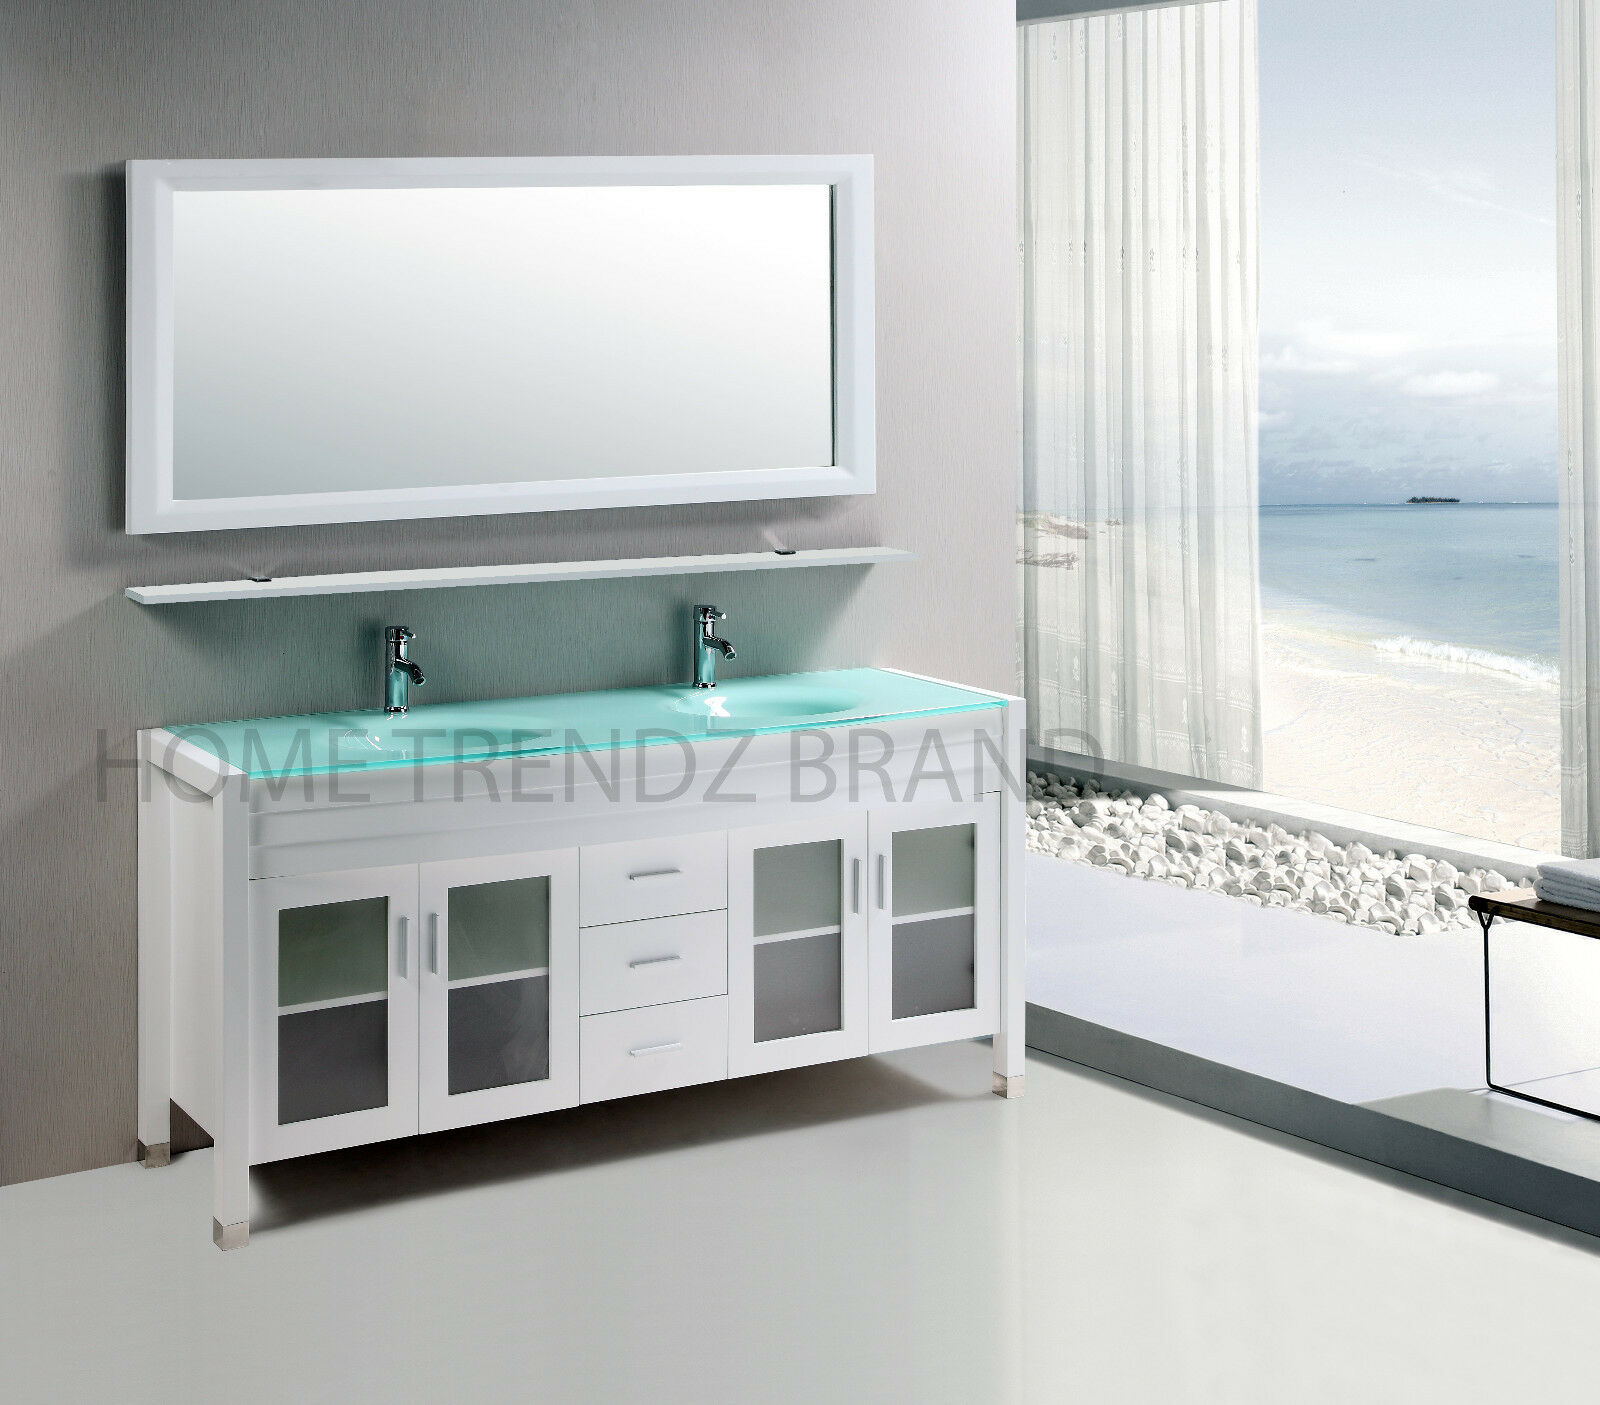 60 inch Double Sink Bathroom Vanity cabinet white with mirror & faucets 20white 1 of 2FREE Shipping ...